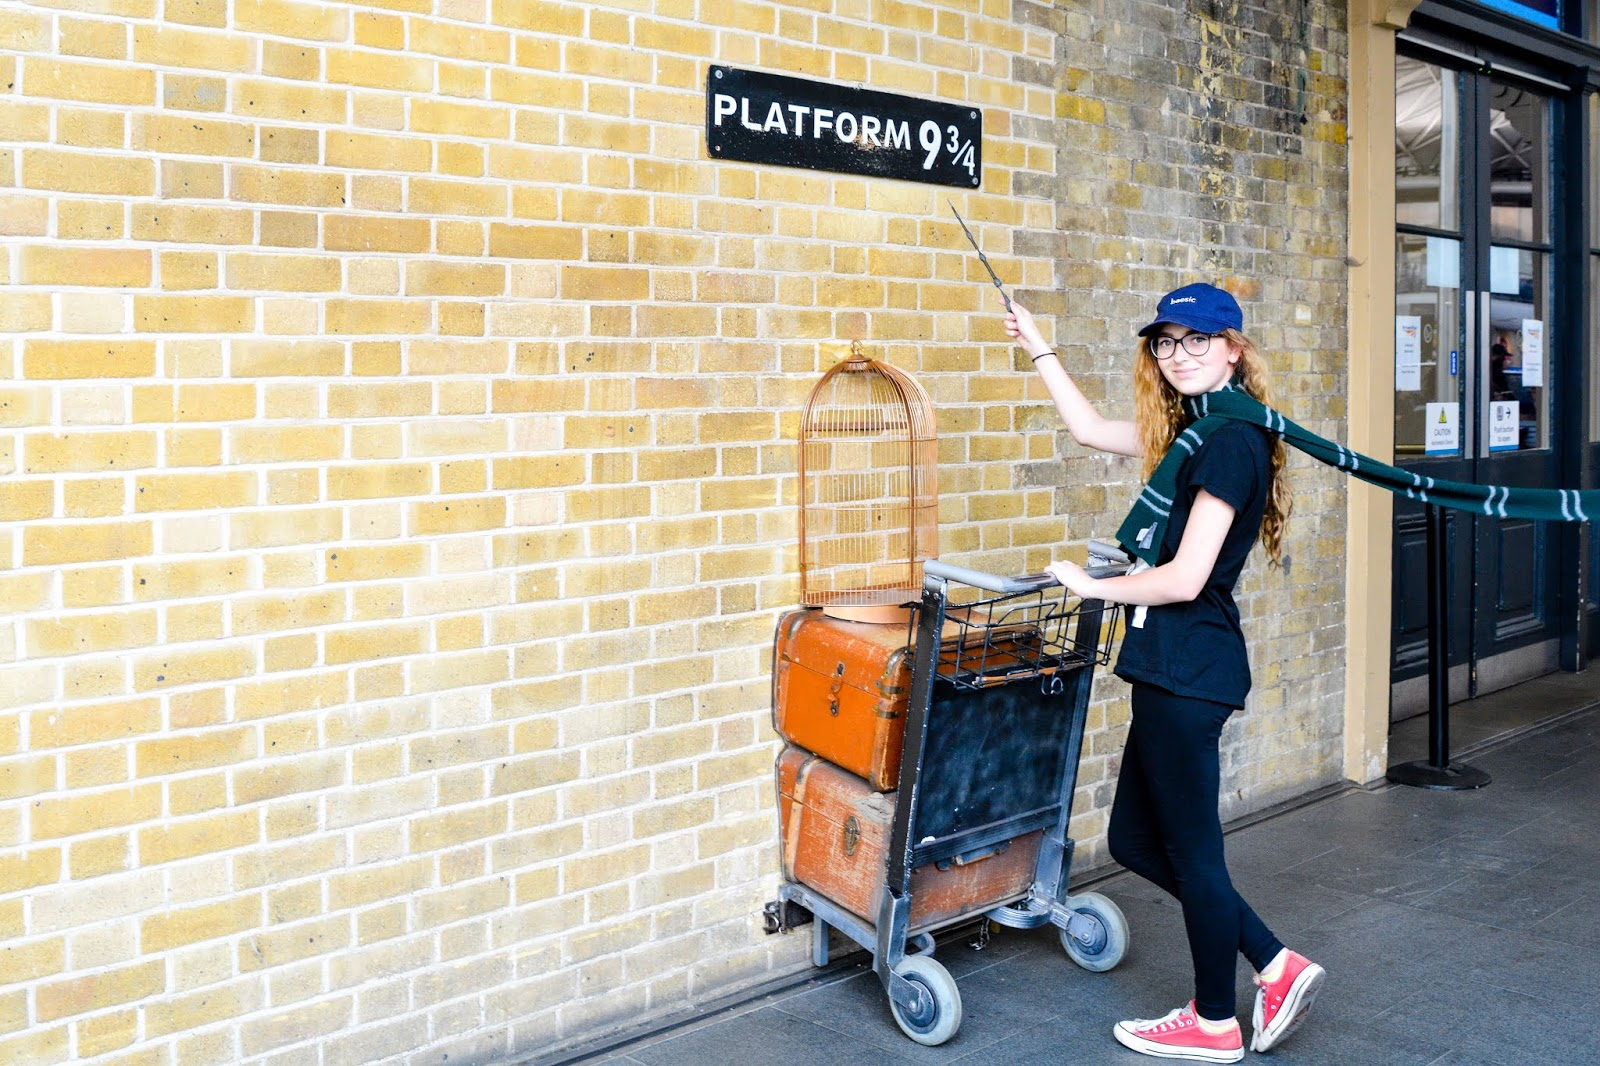 Harry Potter King's Cross Station